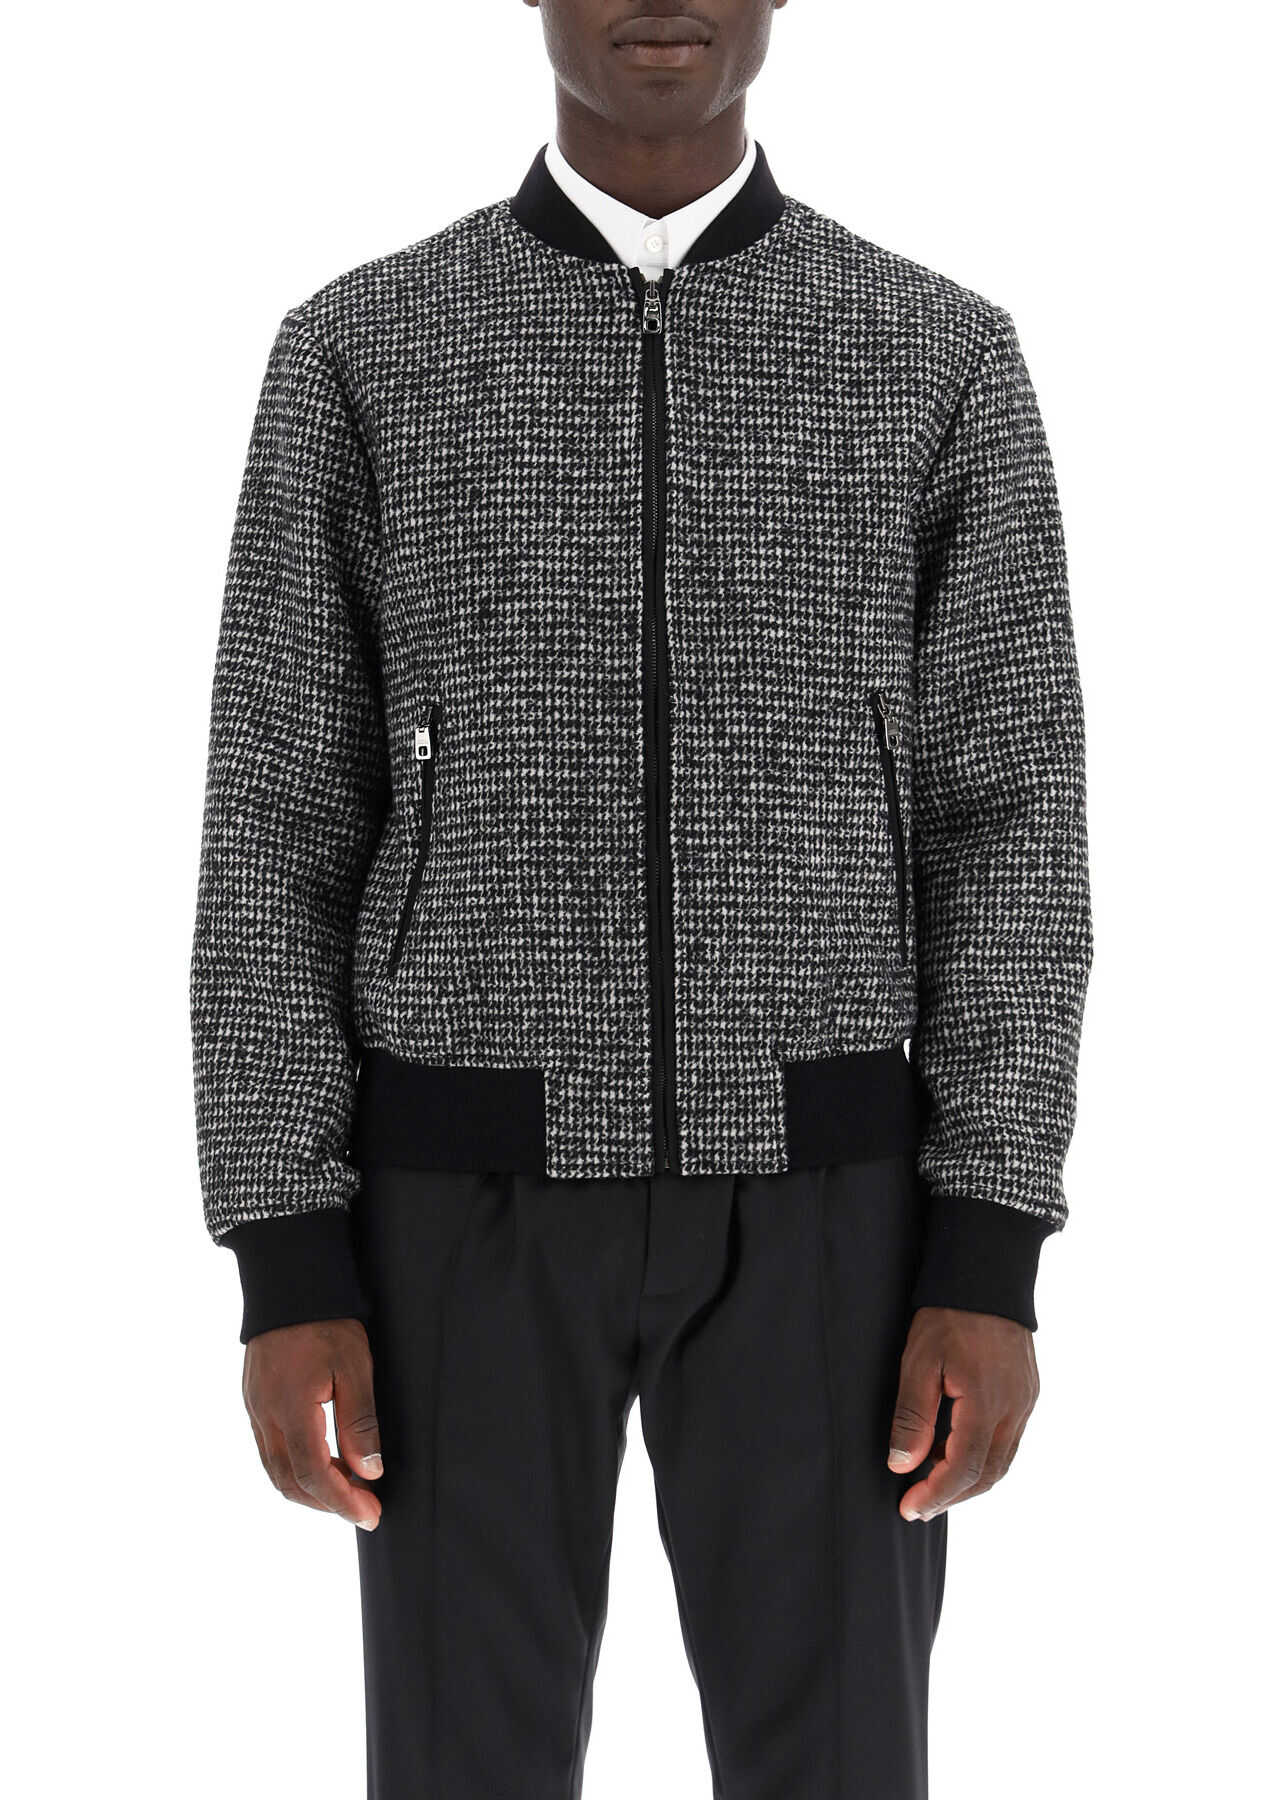 Dolce & Gabbana Micro Houndstooth Bomber Jacket G9PD5T FMMF7 FANTASIA NON STAMPA image0